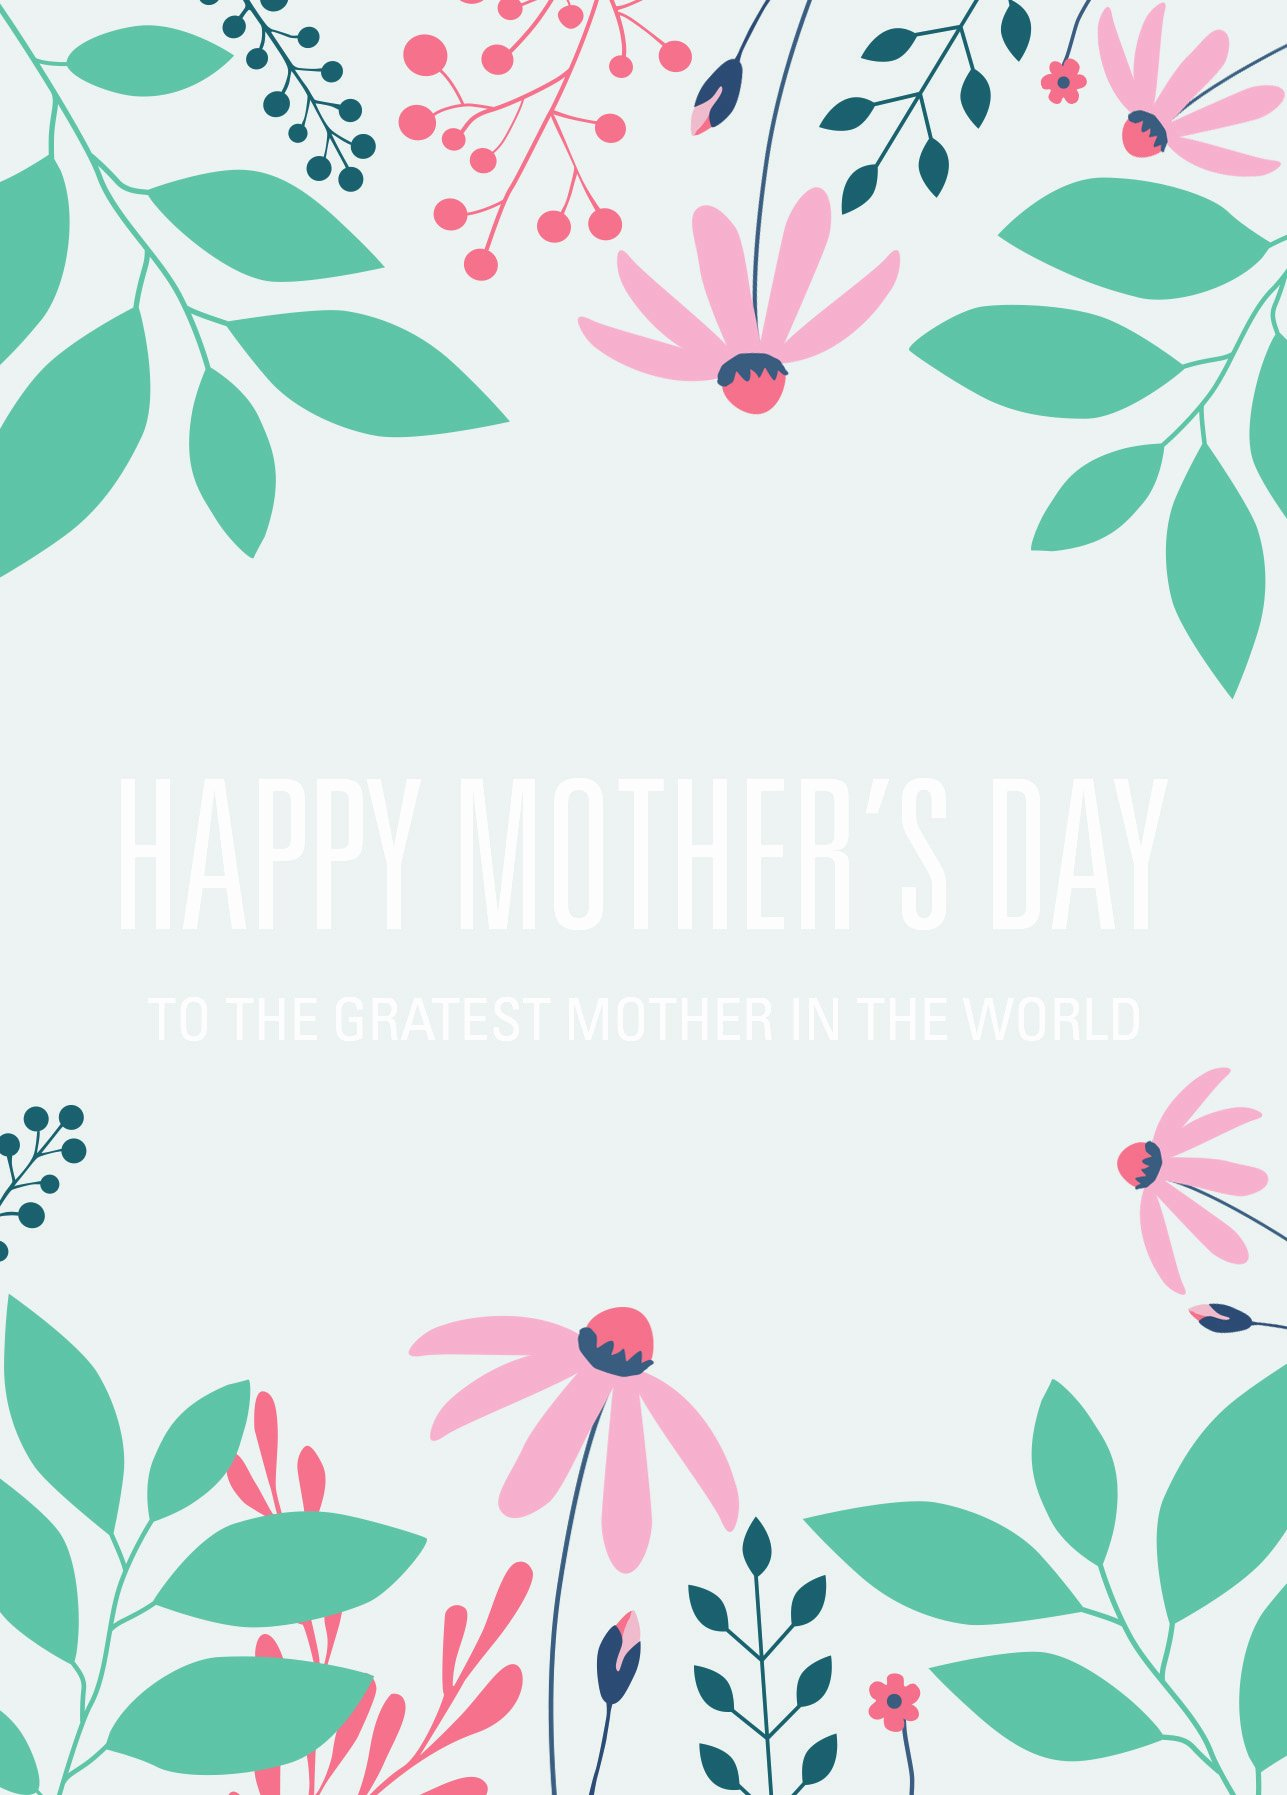 Mothers Day Cards Template Awesome Free Printable Card Template for Mother's Day